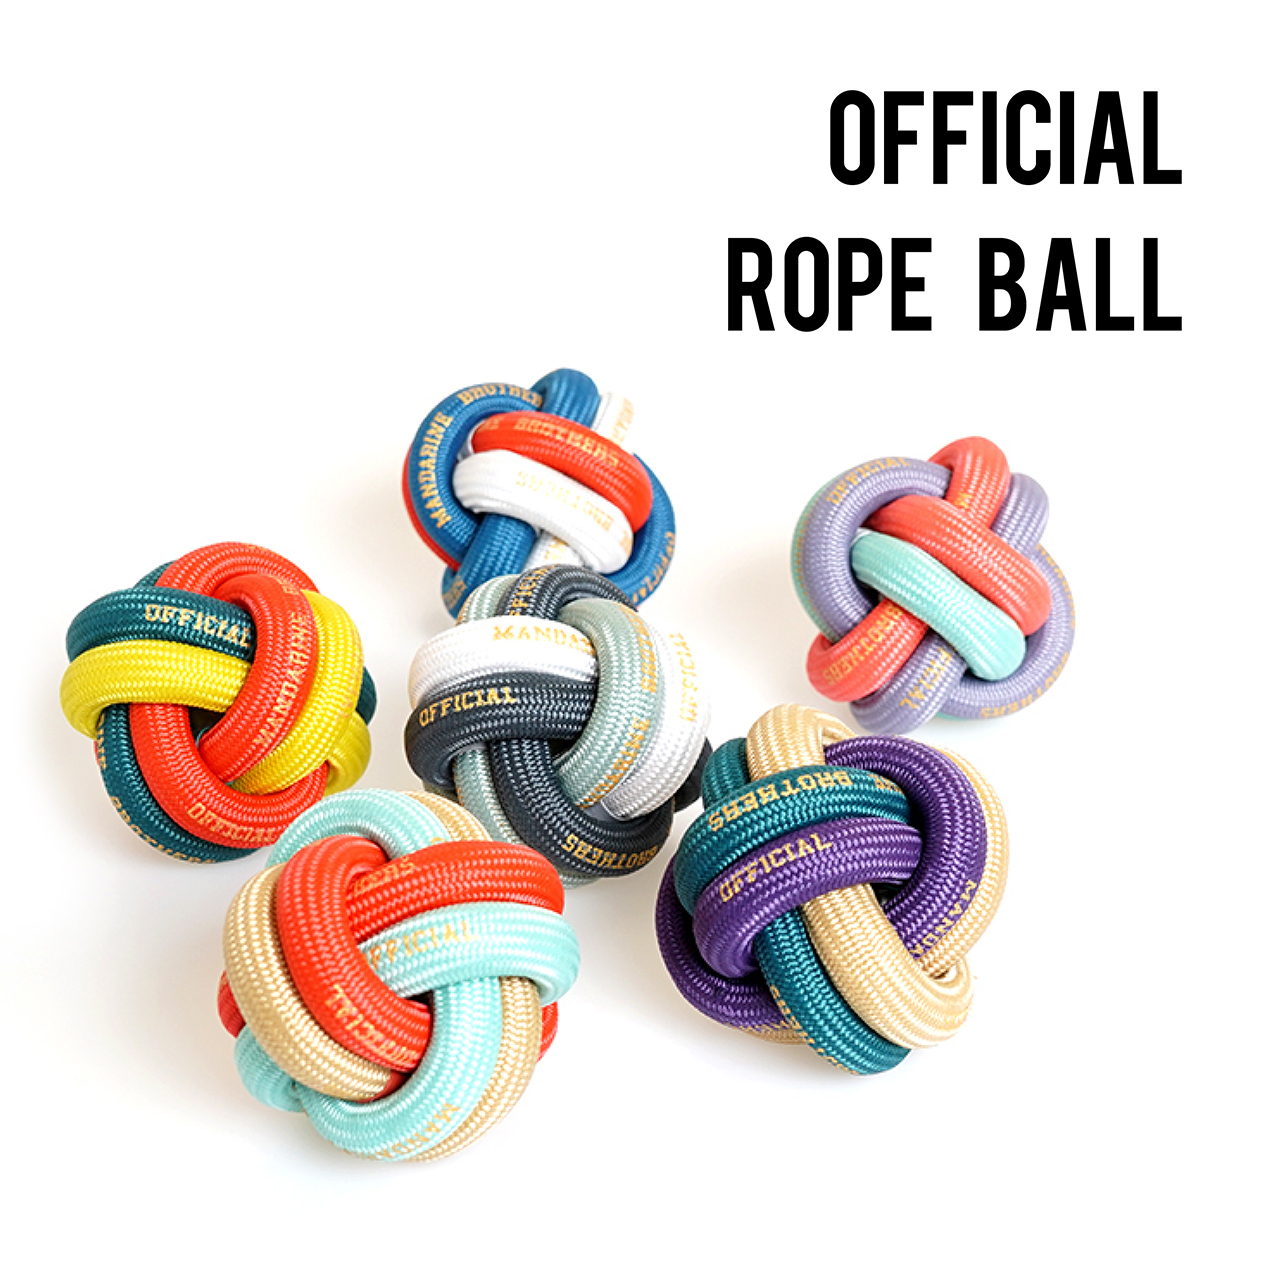 OFFICIAL ROPE BALL オフィシャルロープボール